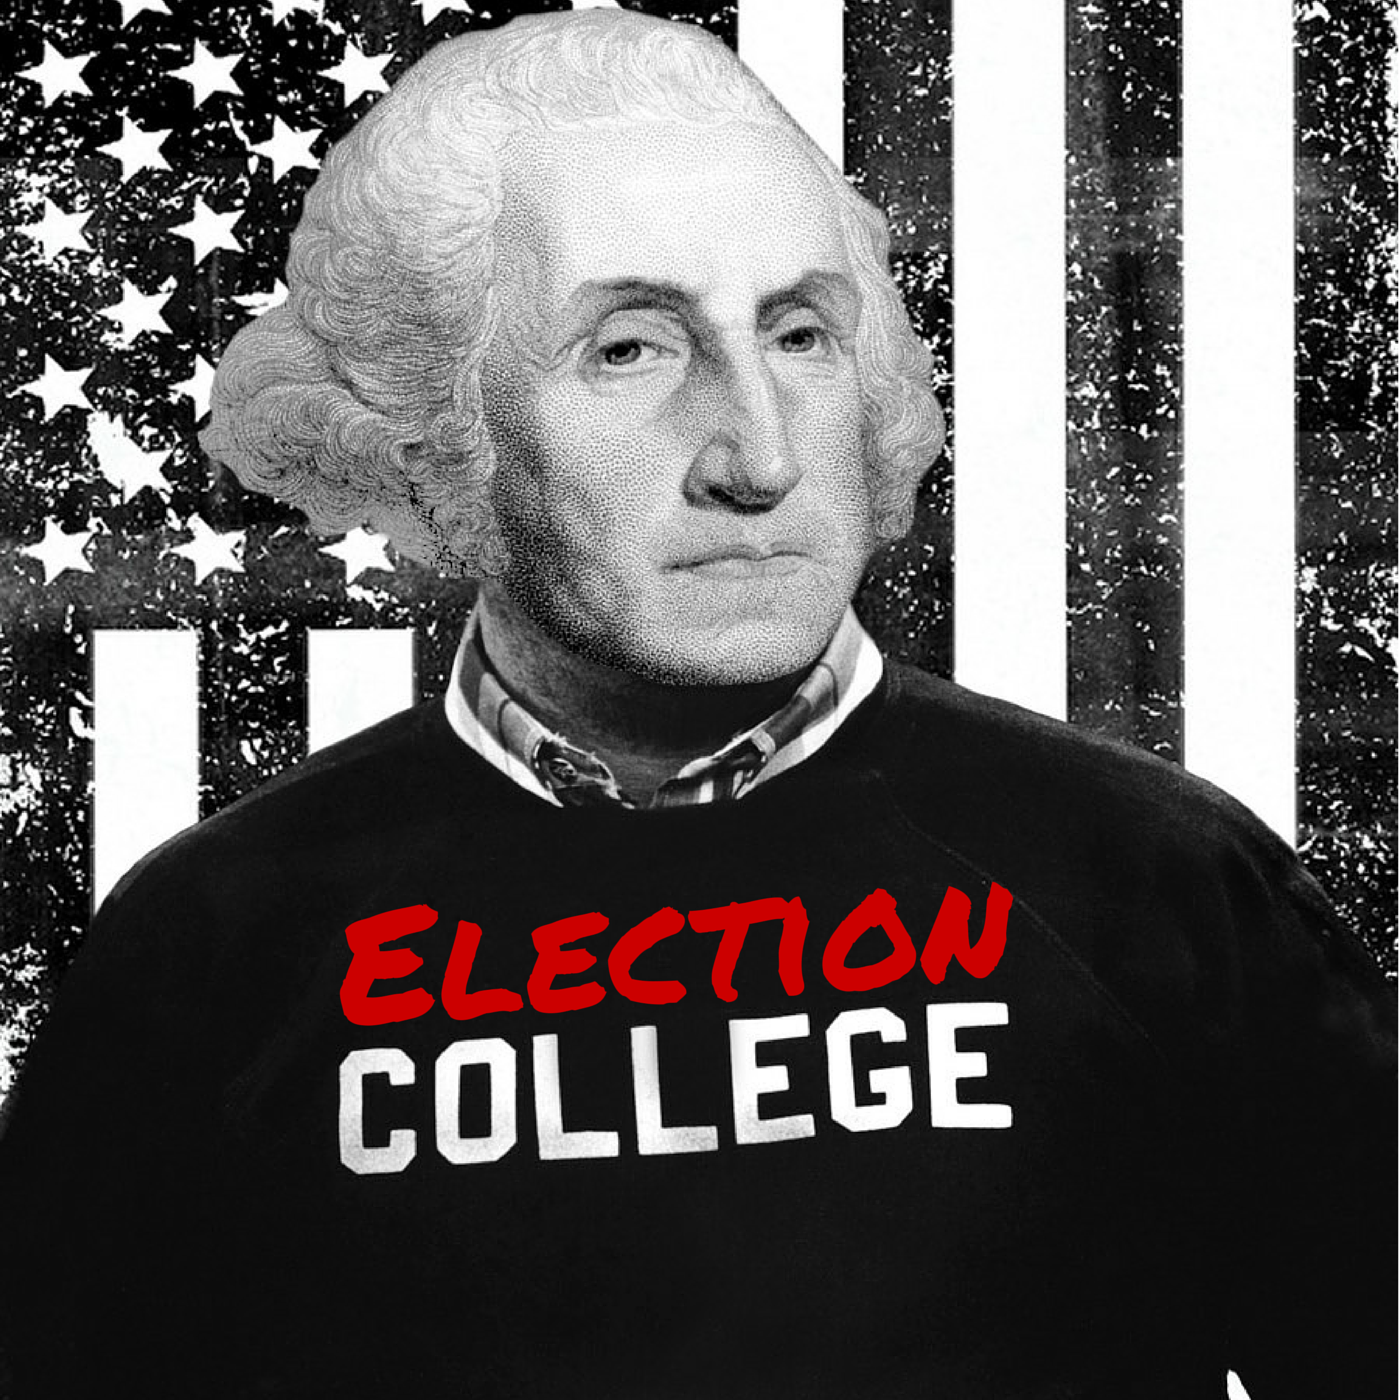 The First First Lady - Dolley Madison | Episode #079 | Election College: United States Presidential Election History